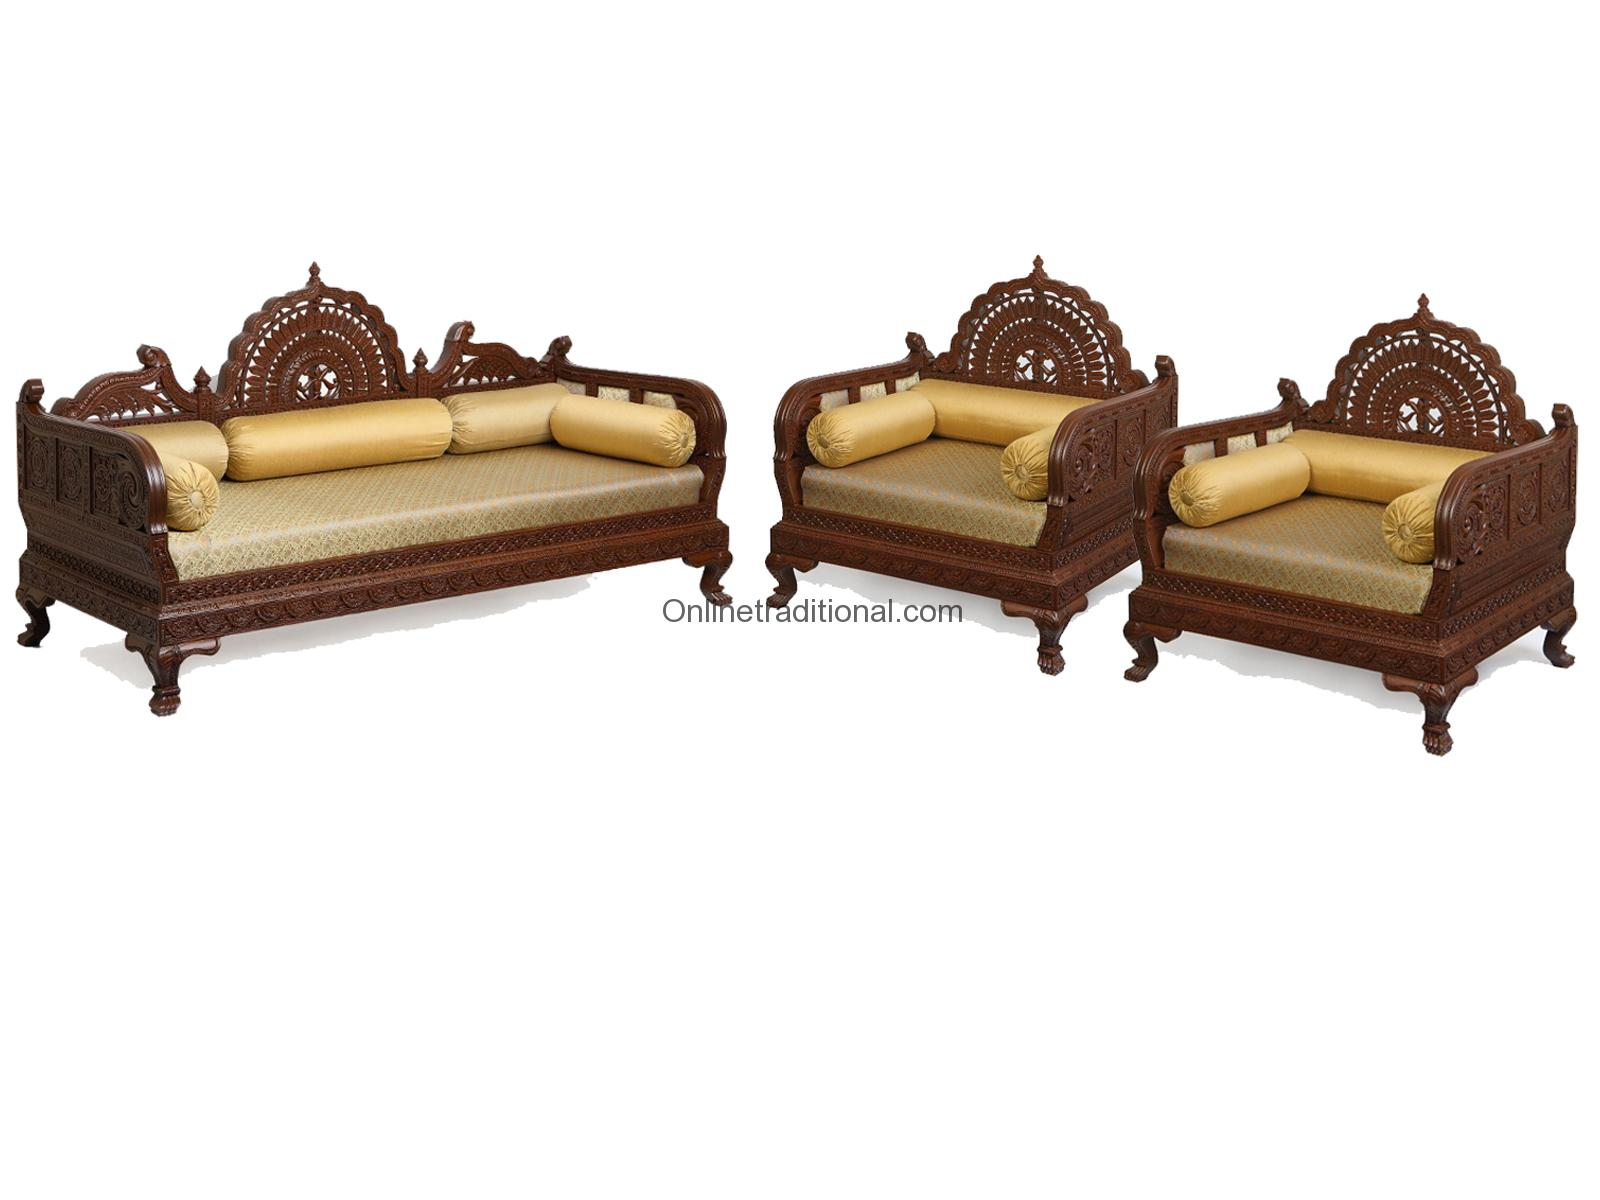 Design Carving Teak Wooden Maharaja Sofa Sets Pearl Handicrafts ~ Wooden Sofa Sets For Living Room